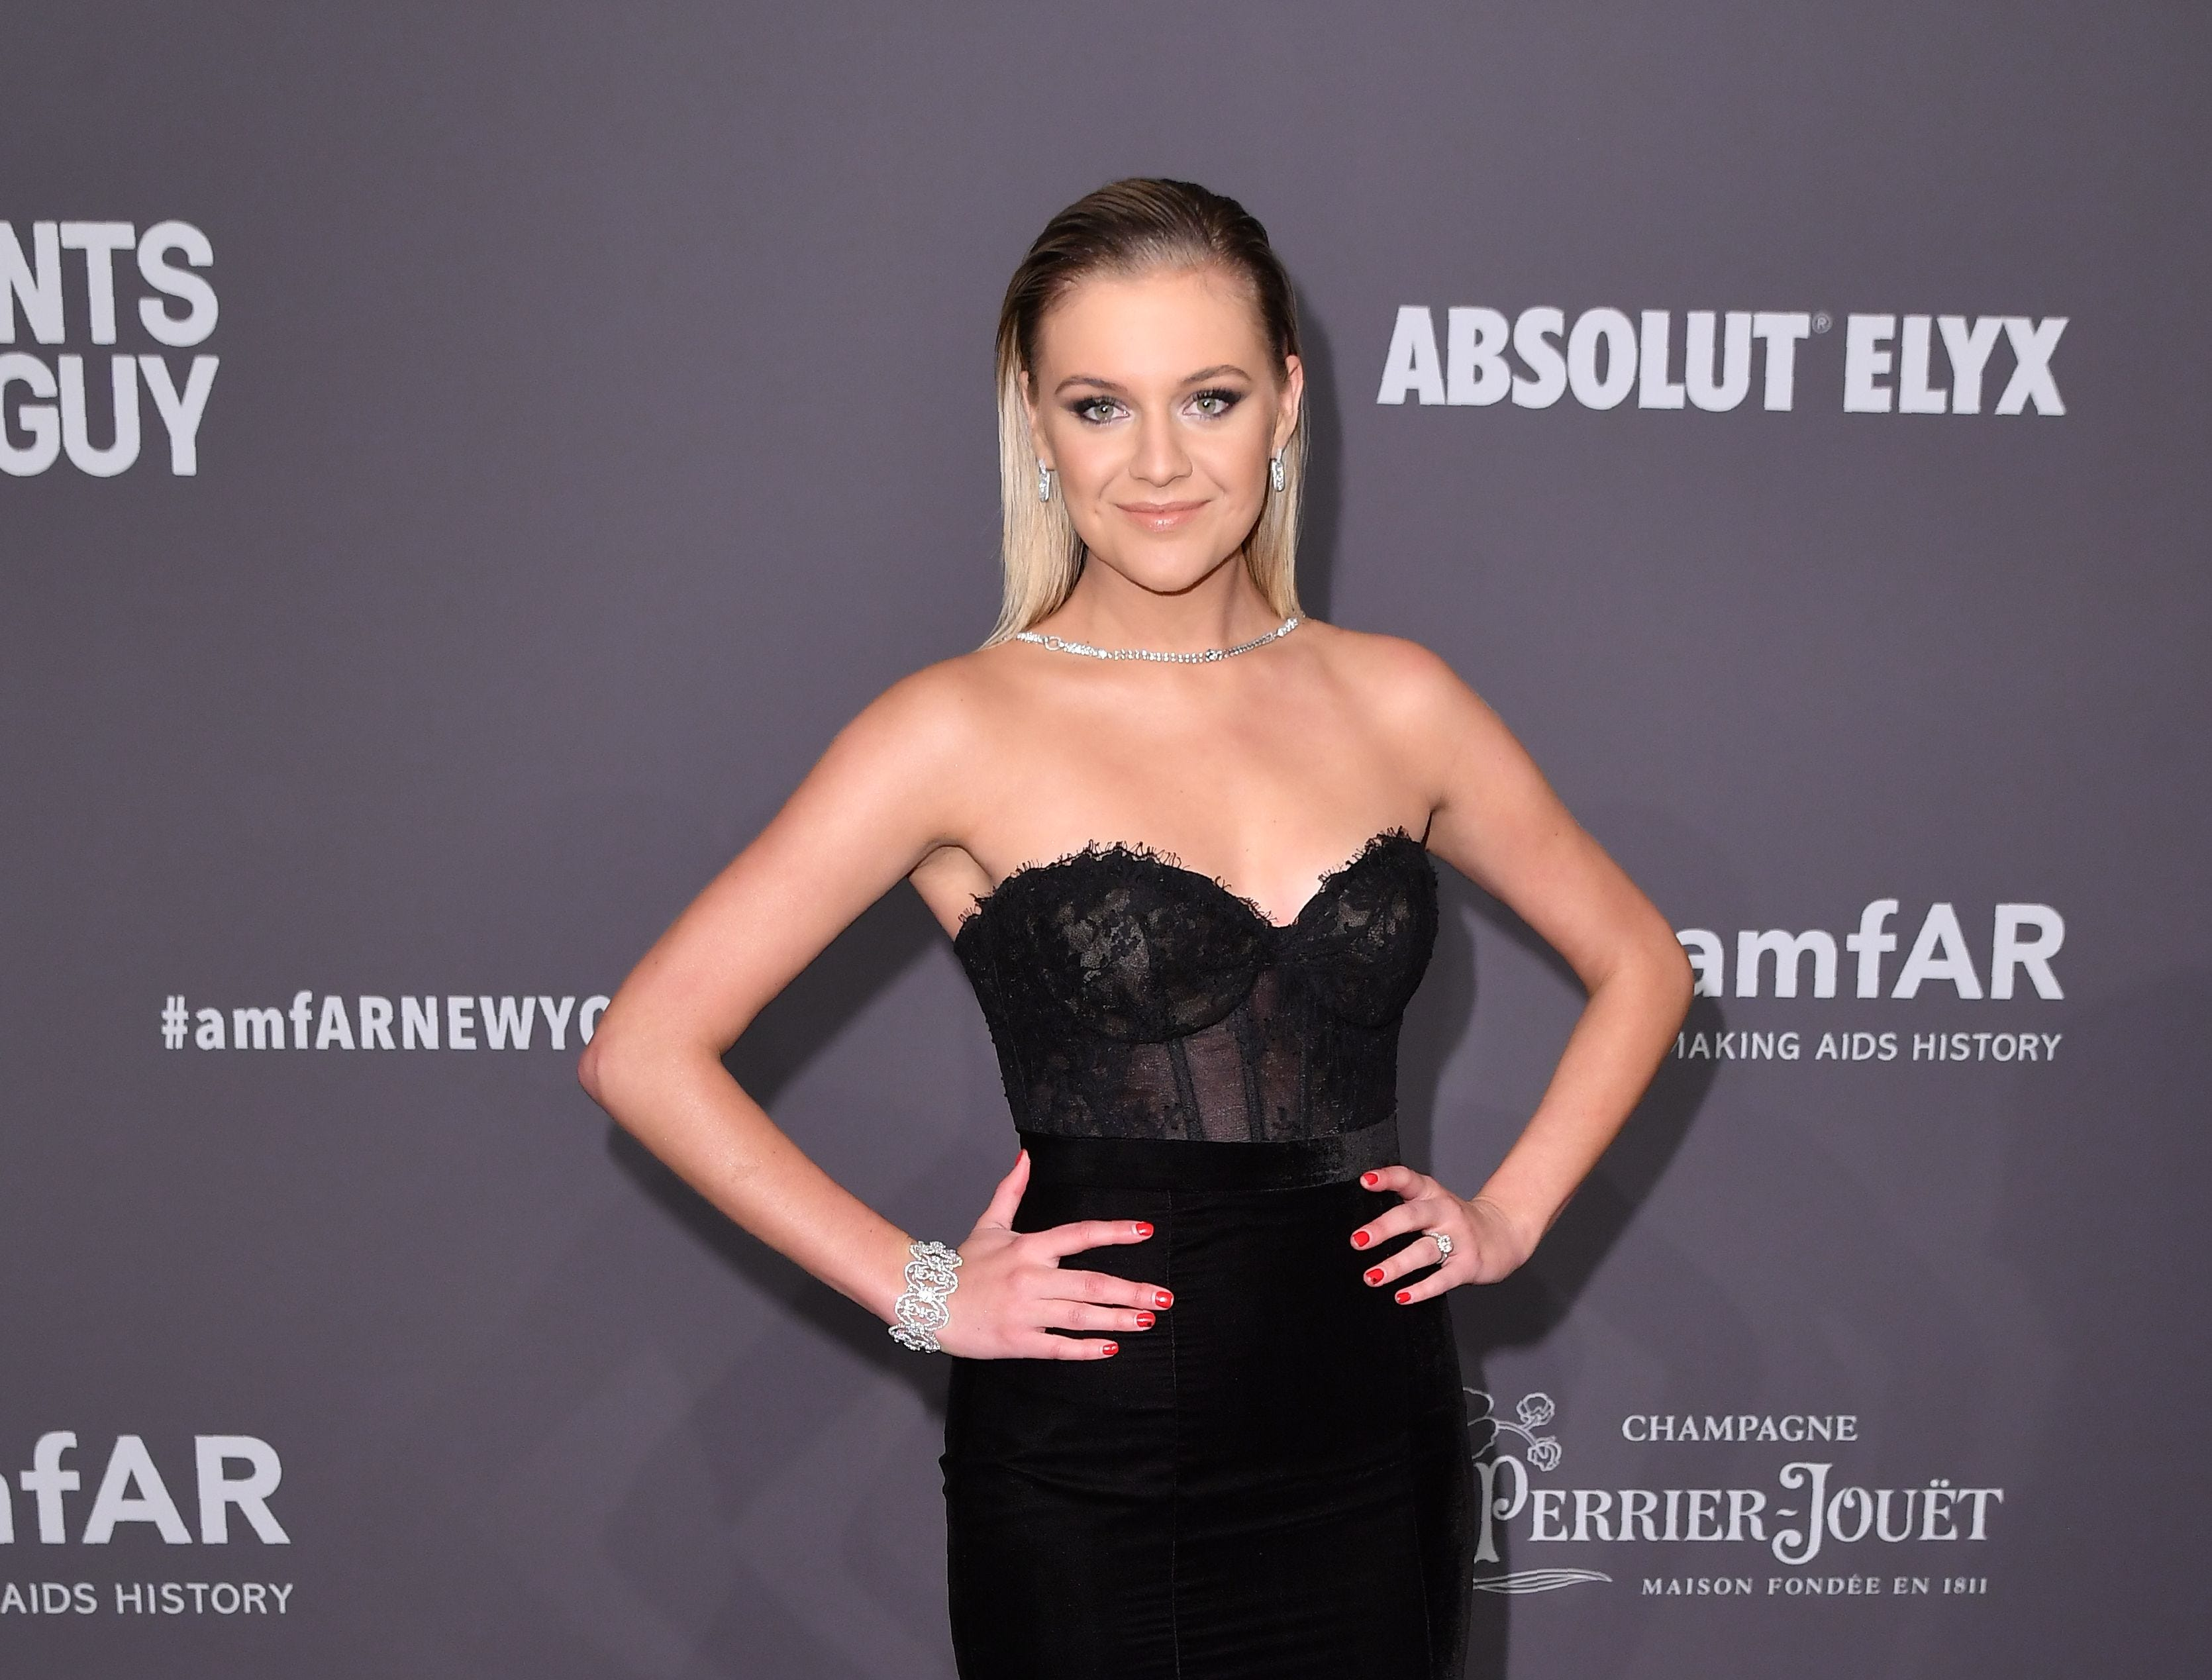 US singer/songwriter Kelsea Ballerini arrives at The amfAR Gala New York, the Foundations 21st annual benefit for AIDS research during New York Fashion Week at Cipriani Wall Street on February 6, 2019 in New York. (Photo by ANGELA WEISS / AFP)ANGELA WEISS/AFP/Getty Images ORG XMIT: The Found ORIG FILE ID: AFP_1D466D